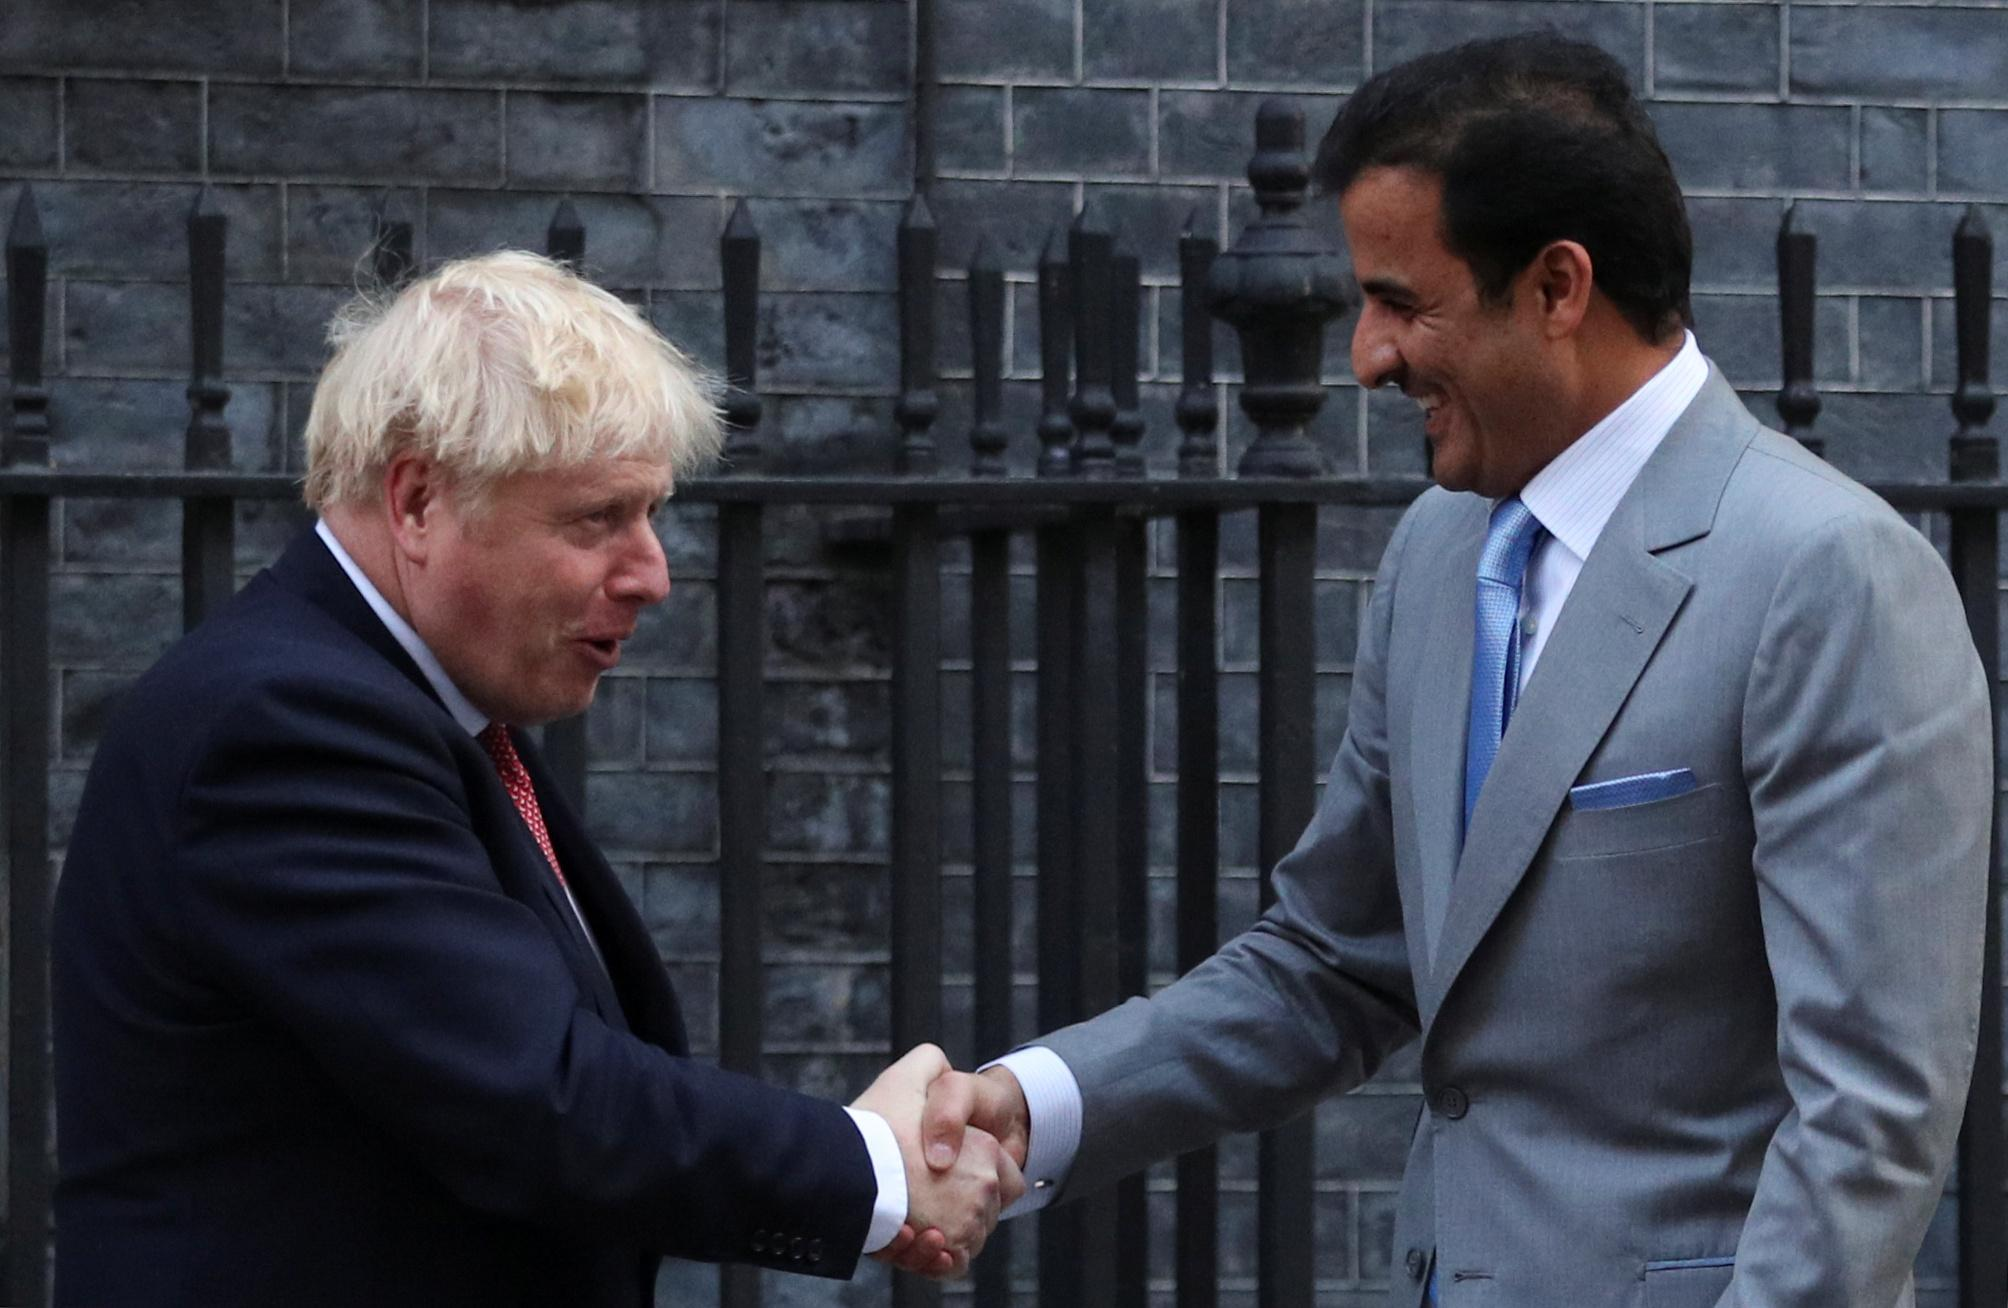 PM Johnson and Emir of Qatar discuss Aramco attacks in London meeting